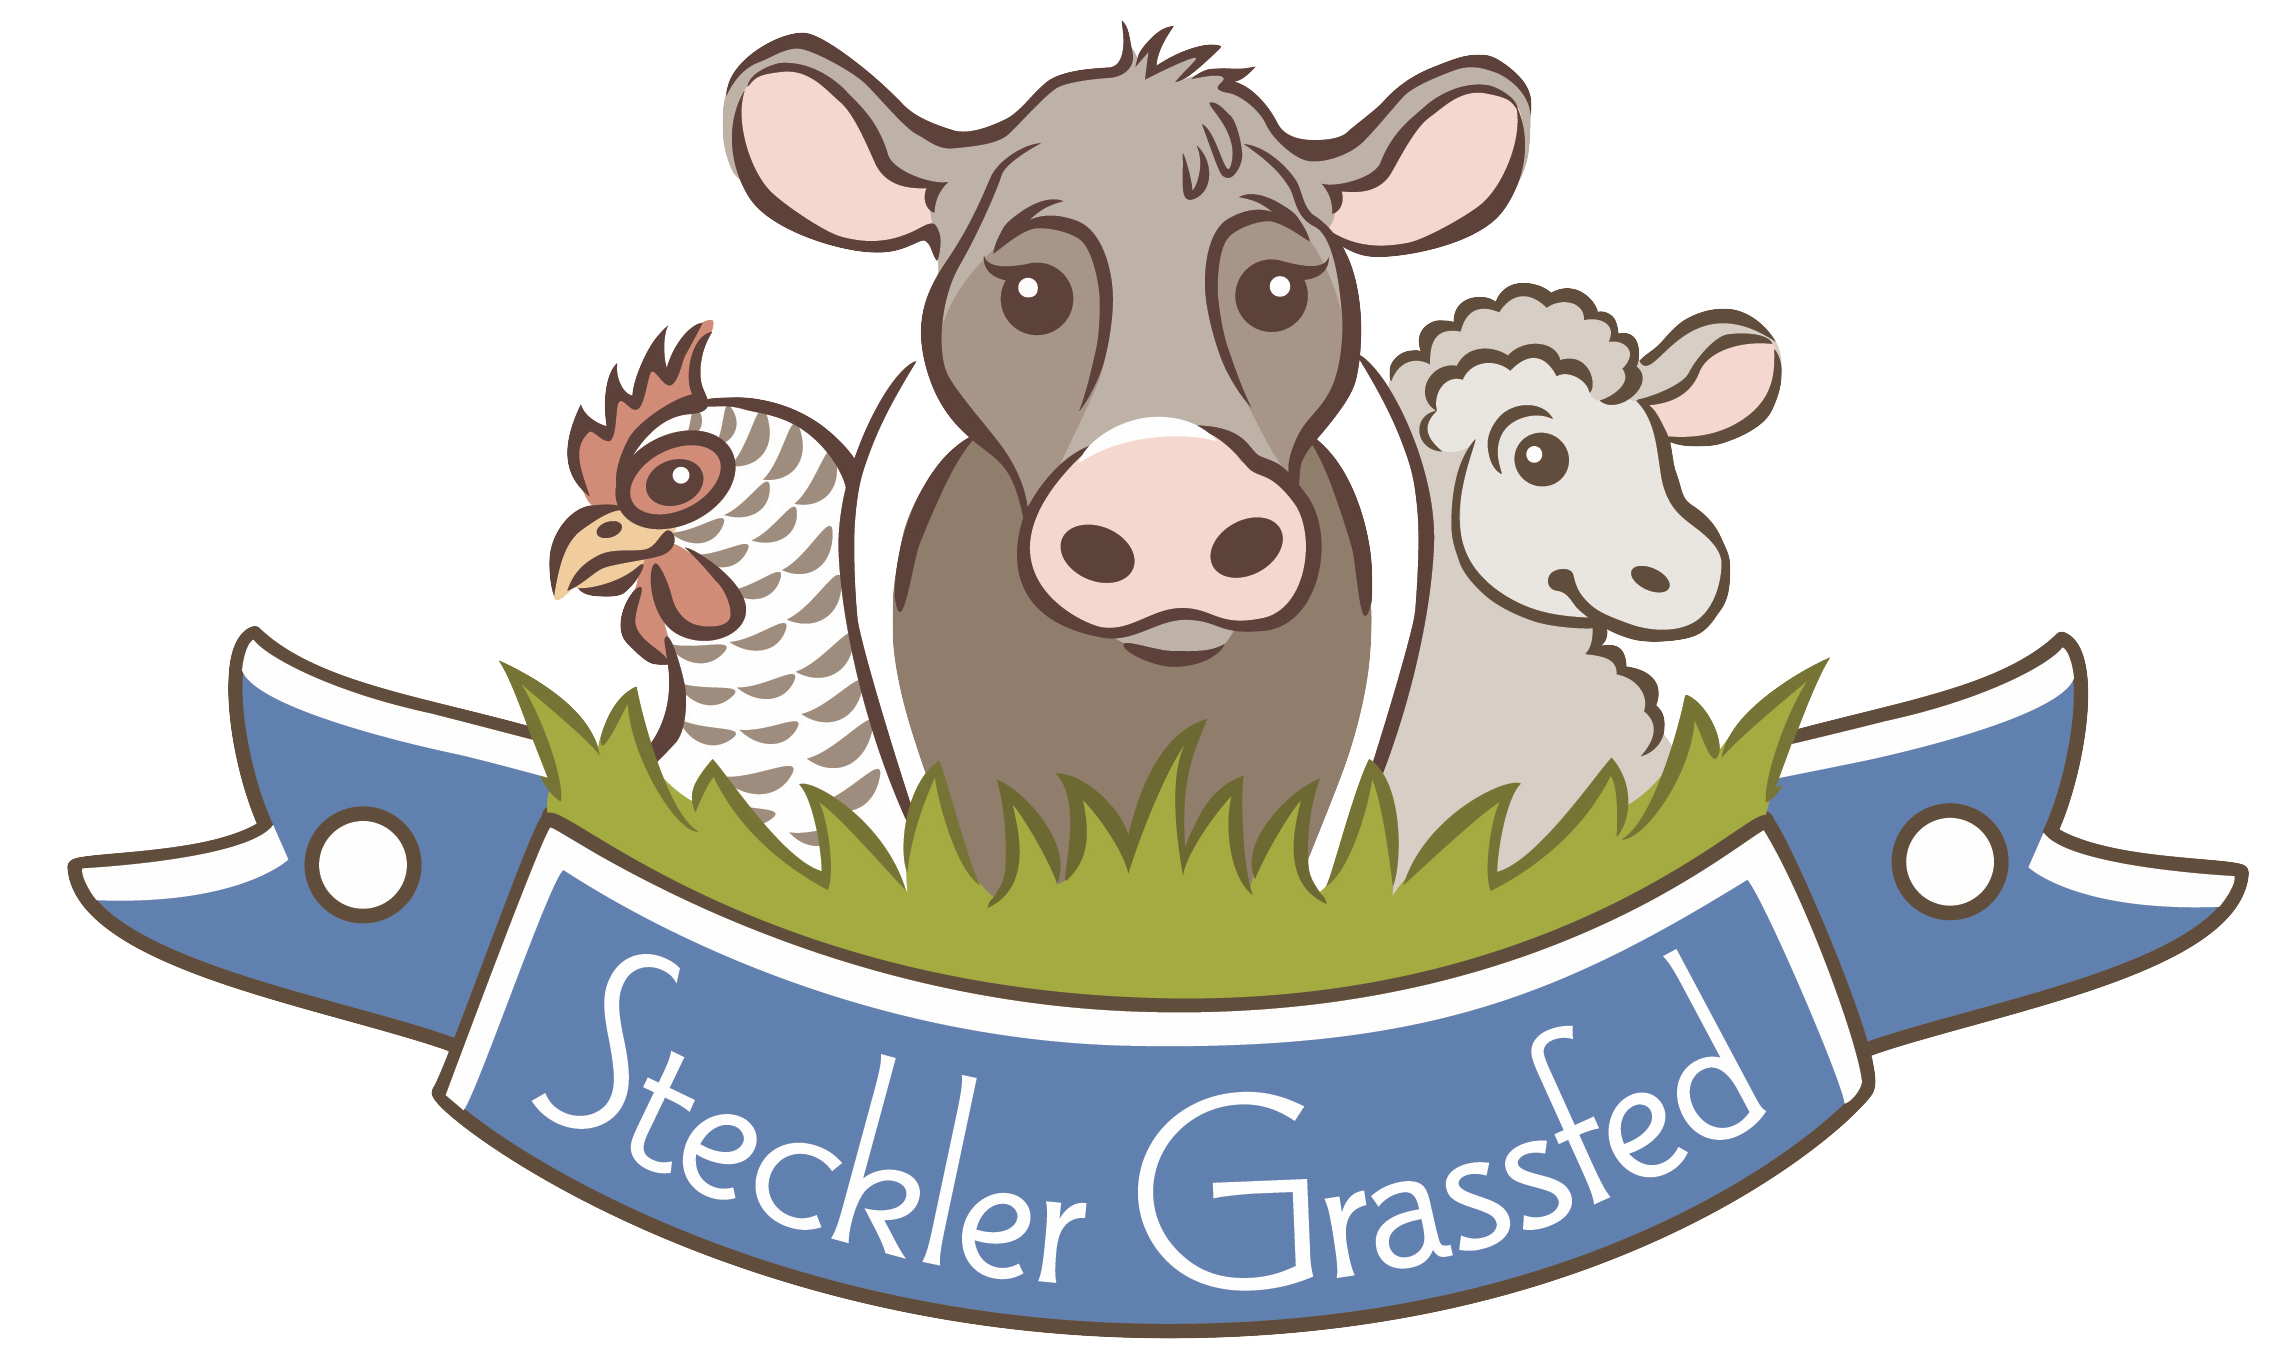 StecklerGrassfedLogo_Color_GENERAL